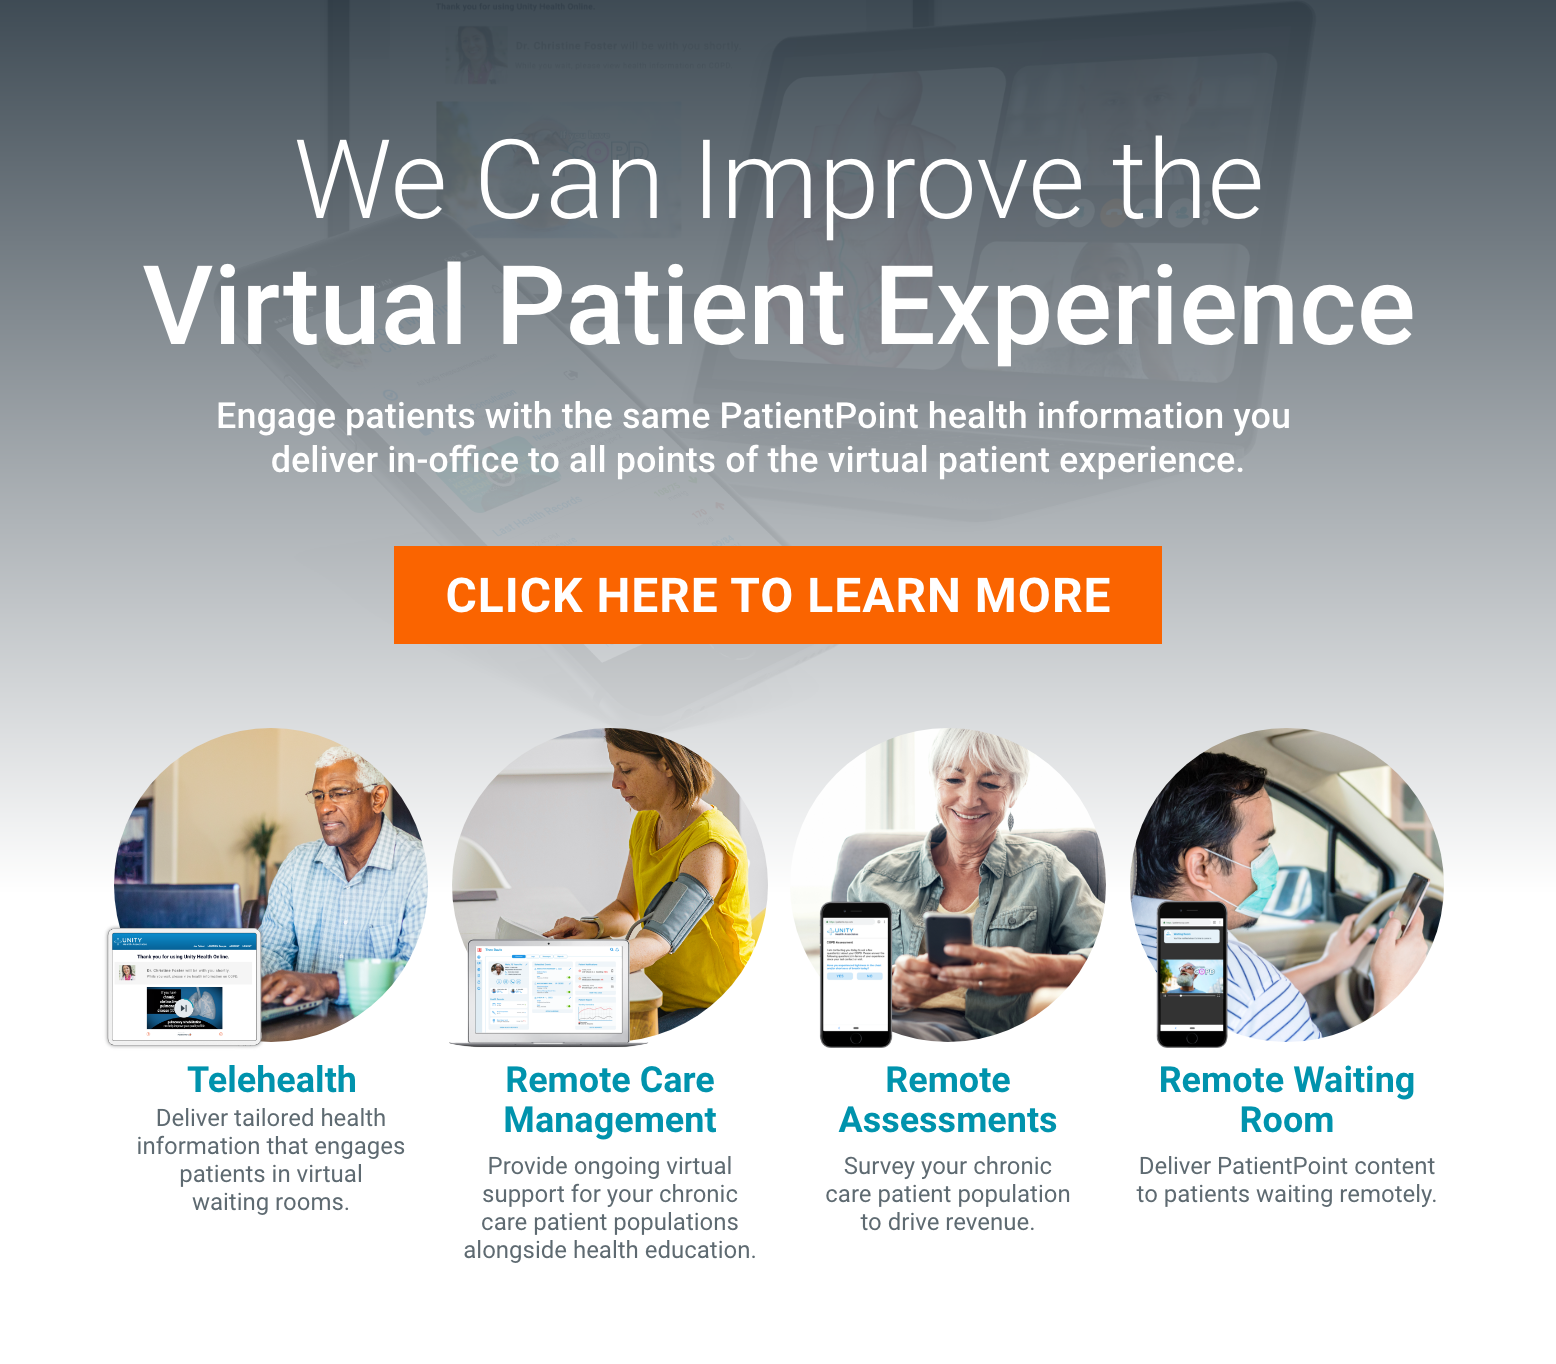 Visit our website to learn more about PatientPoint virtual health solutions